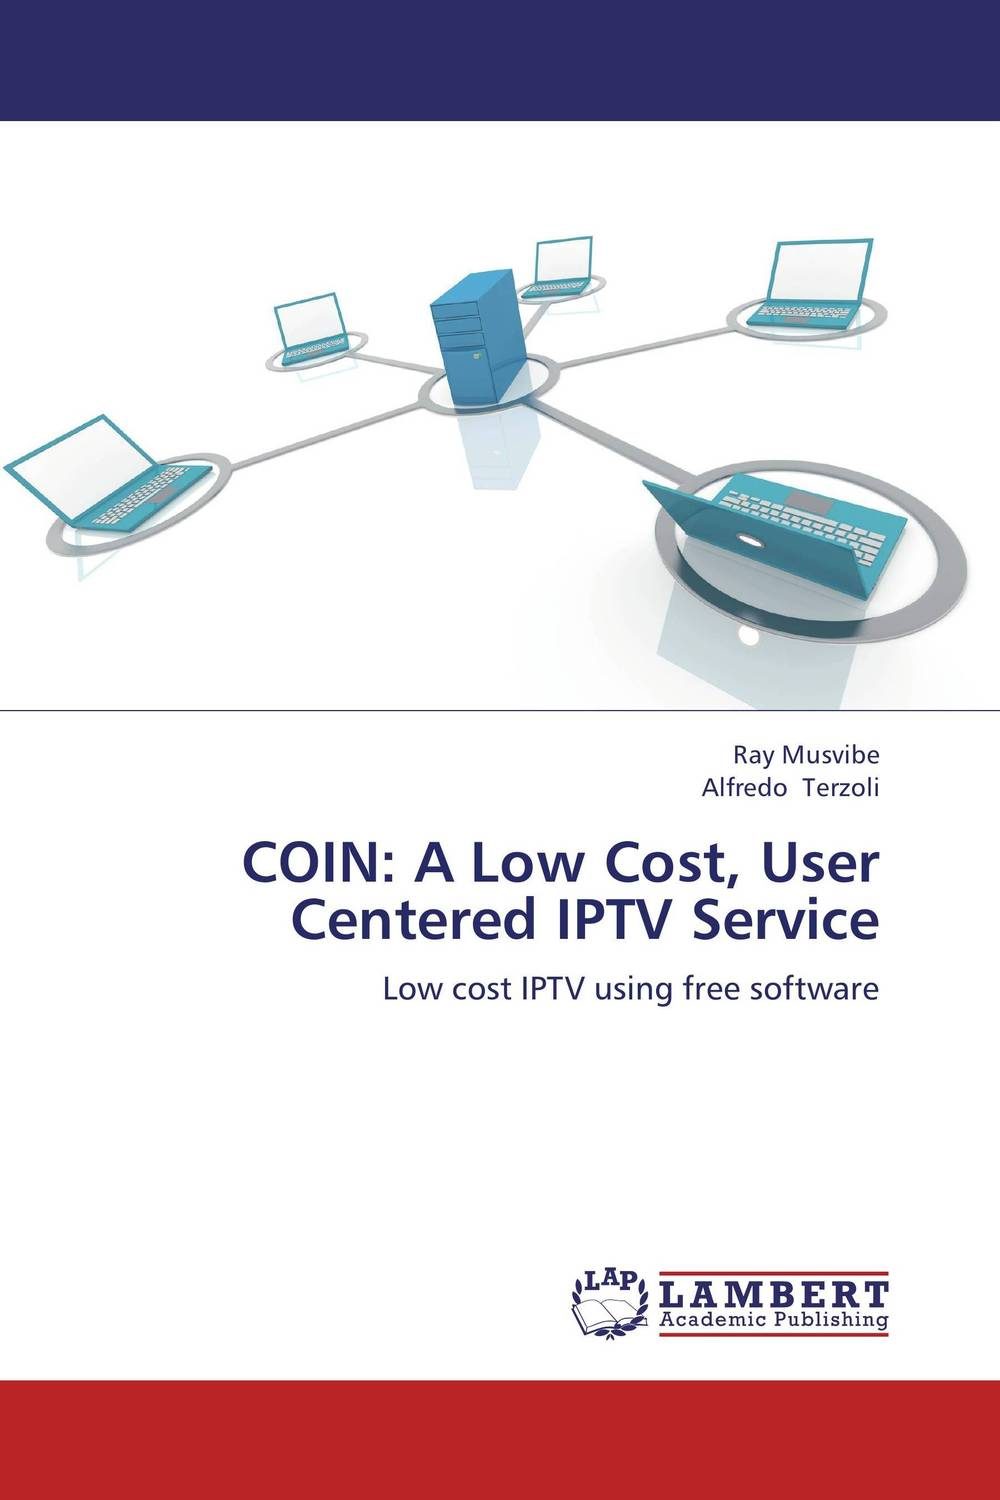 COIN: A Low Cost, User Centered IPTV Service